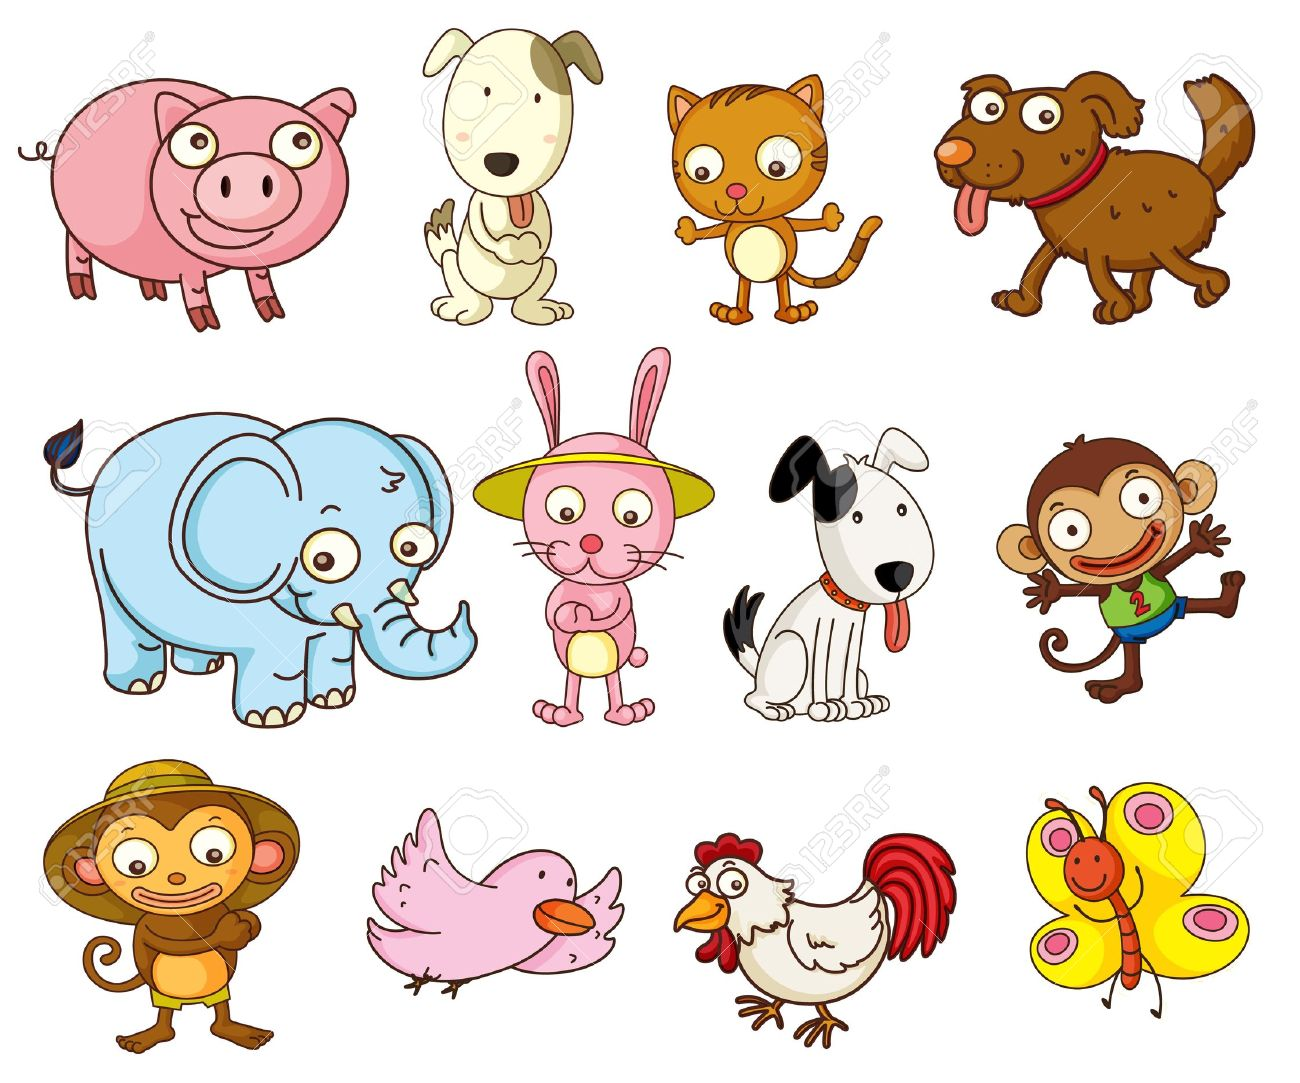 Kind clipart real animal. Illustration of different sea